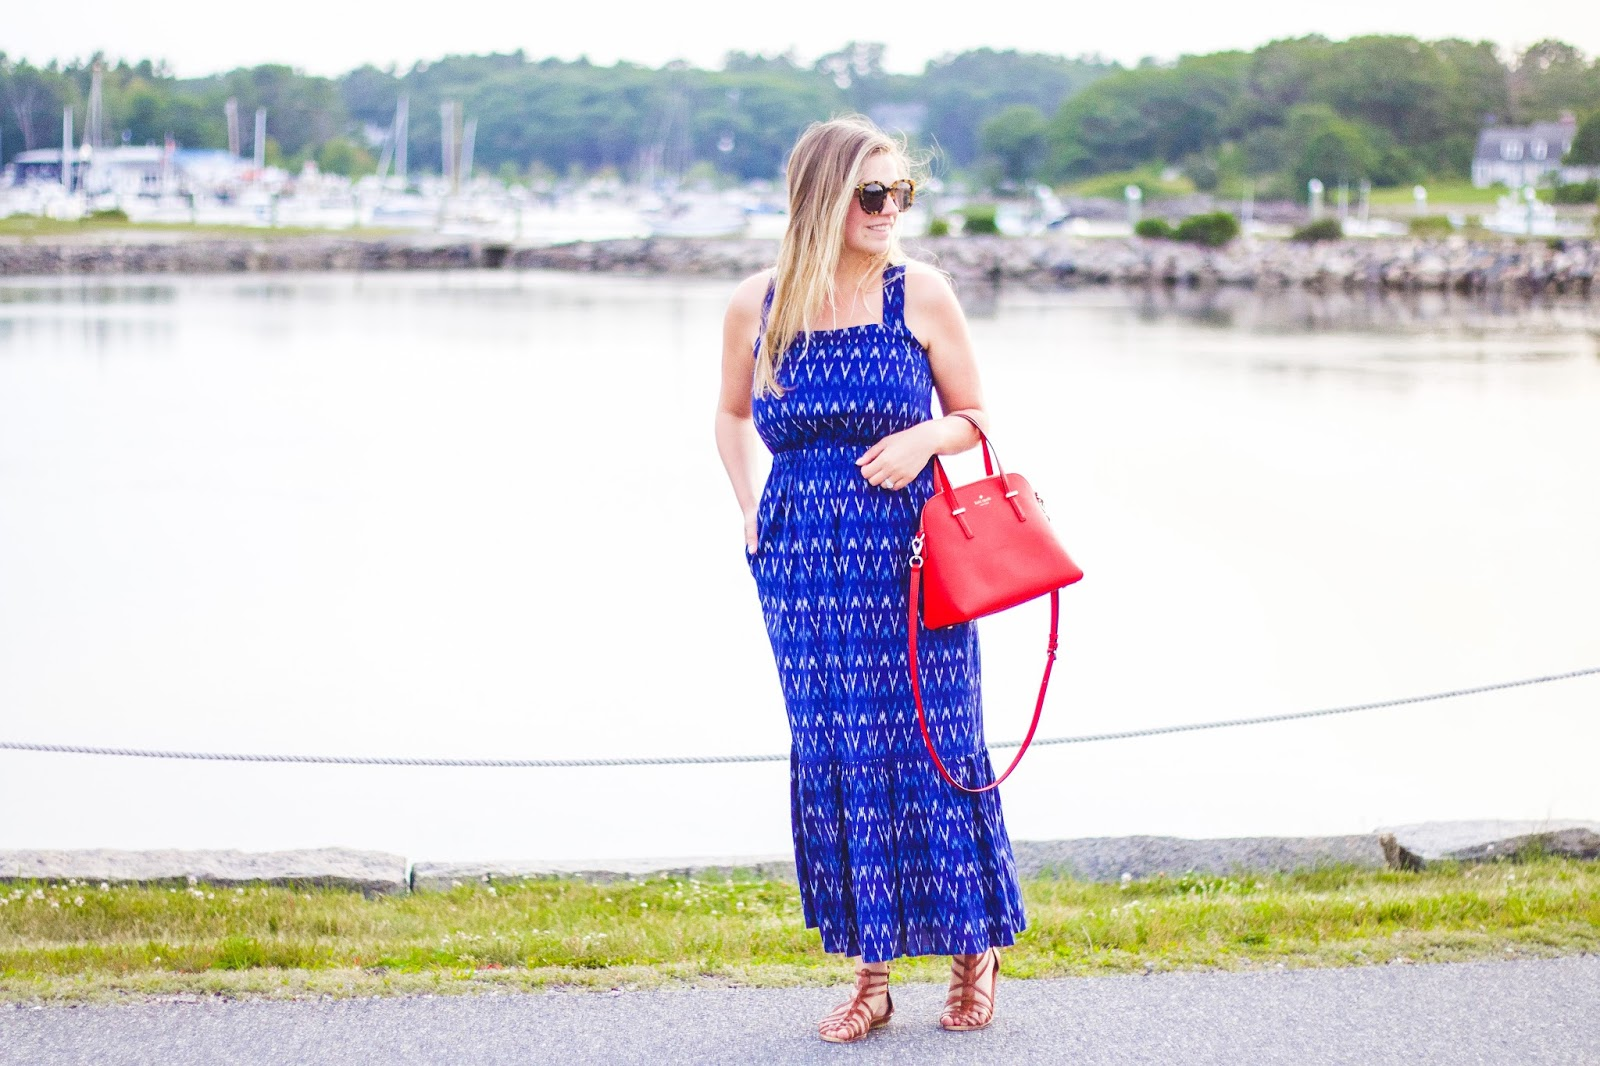 b16b6eb6b1 Style Cubby - Fashion and Lifestyle Blog Based in New England: Blue Ikat  Maxi Dress